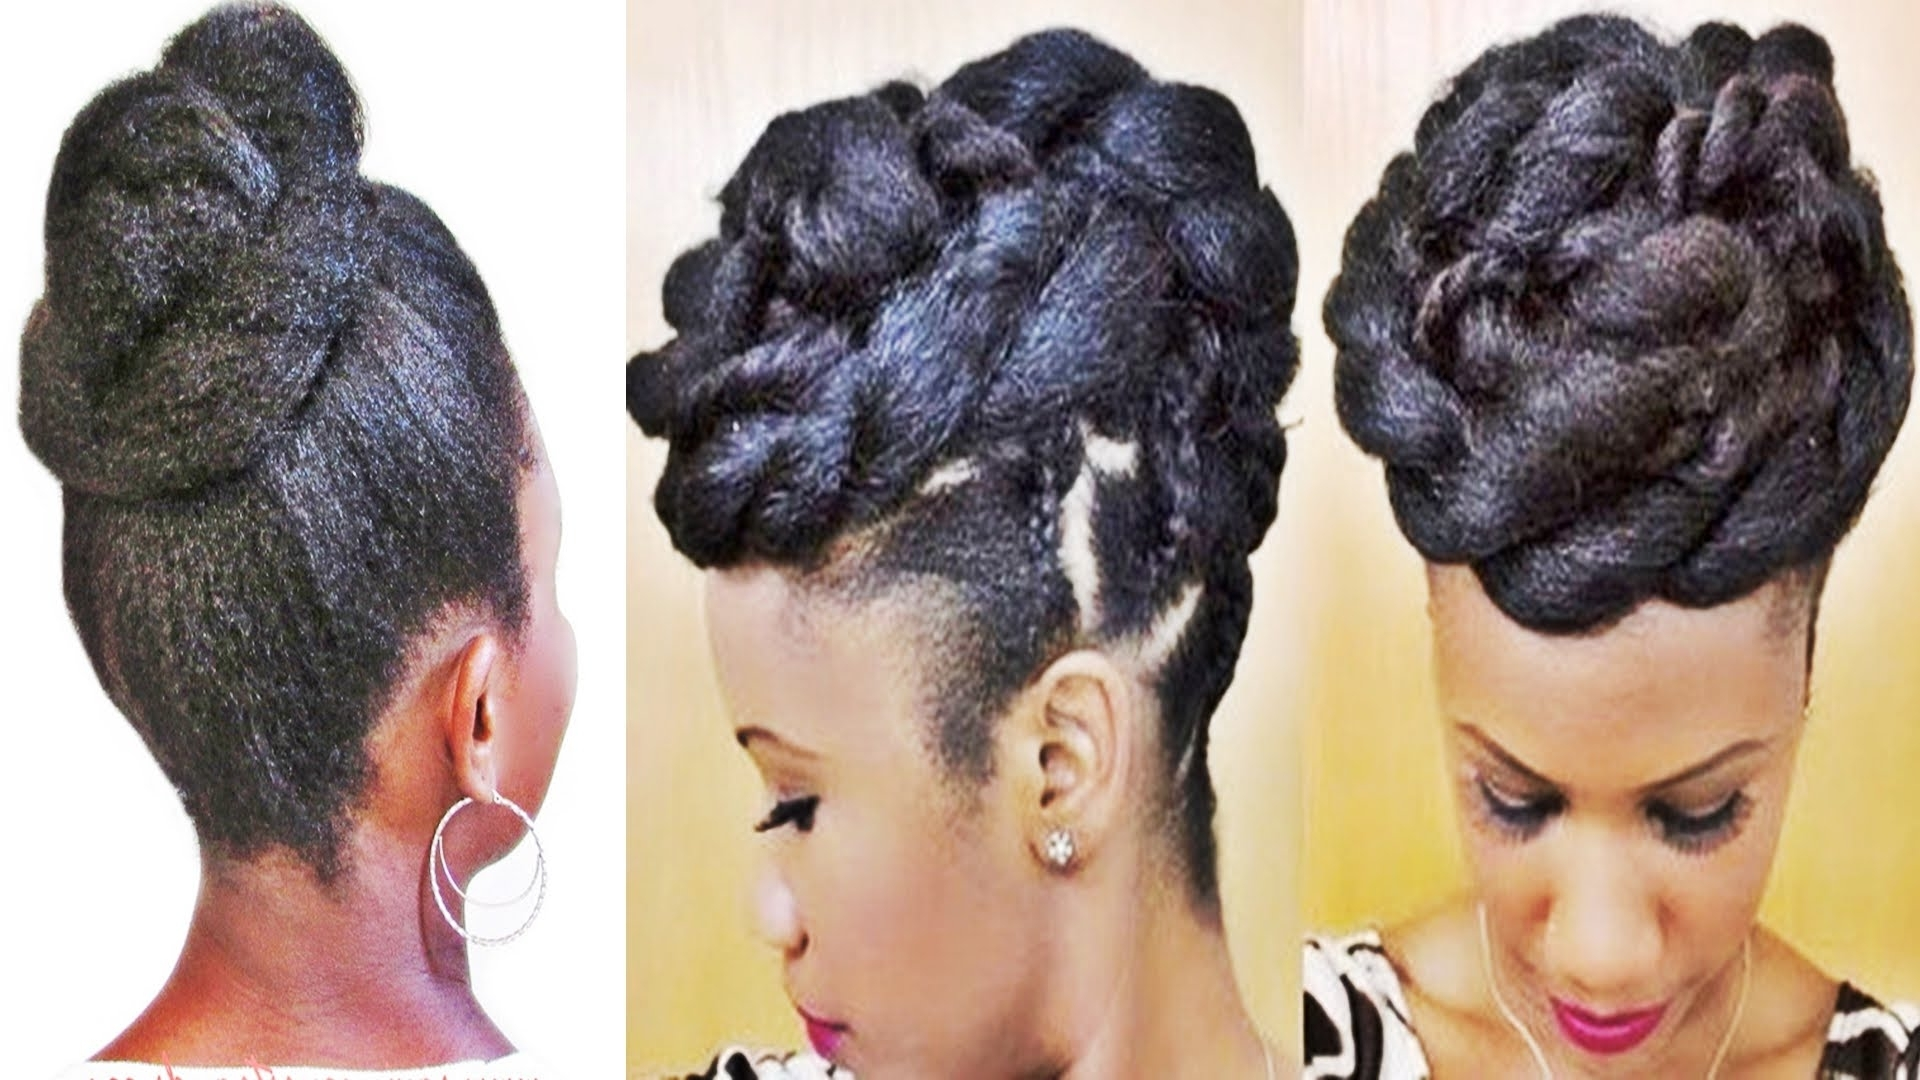 Braids And Twists Updo Hairstyle For Black Women – Youtube With Braided Updo Hairstyles For Black Women (View 10 of 15)